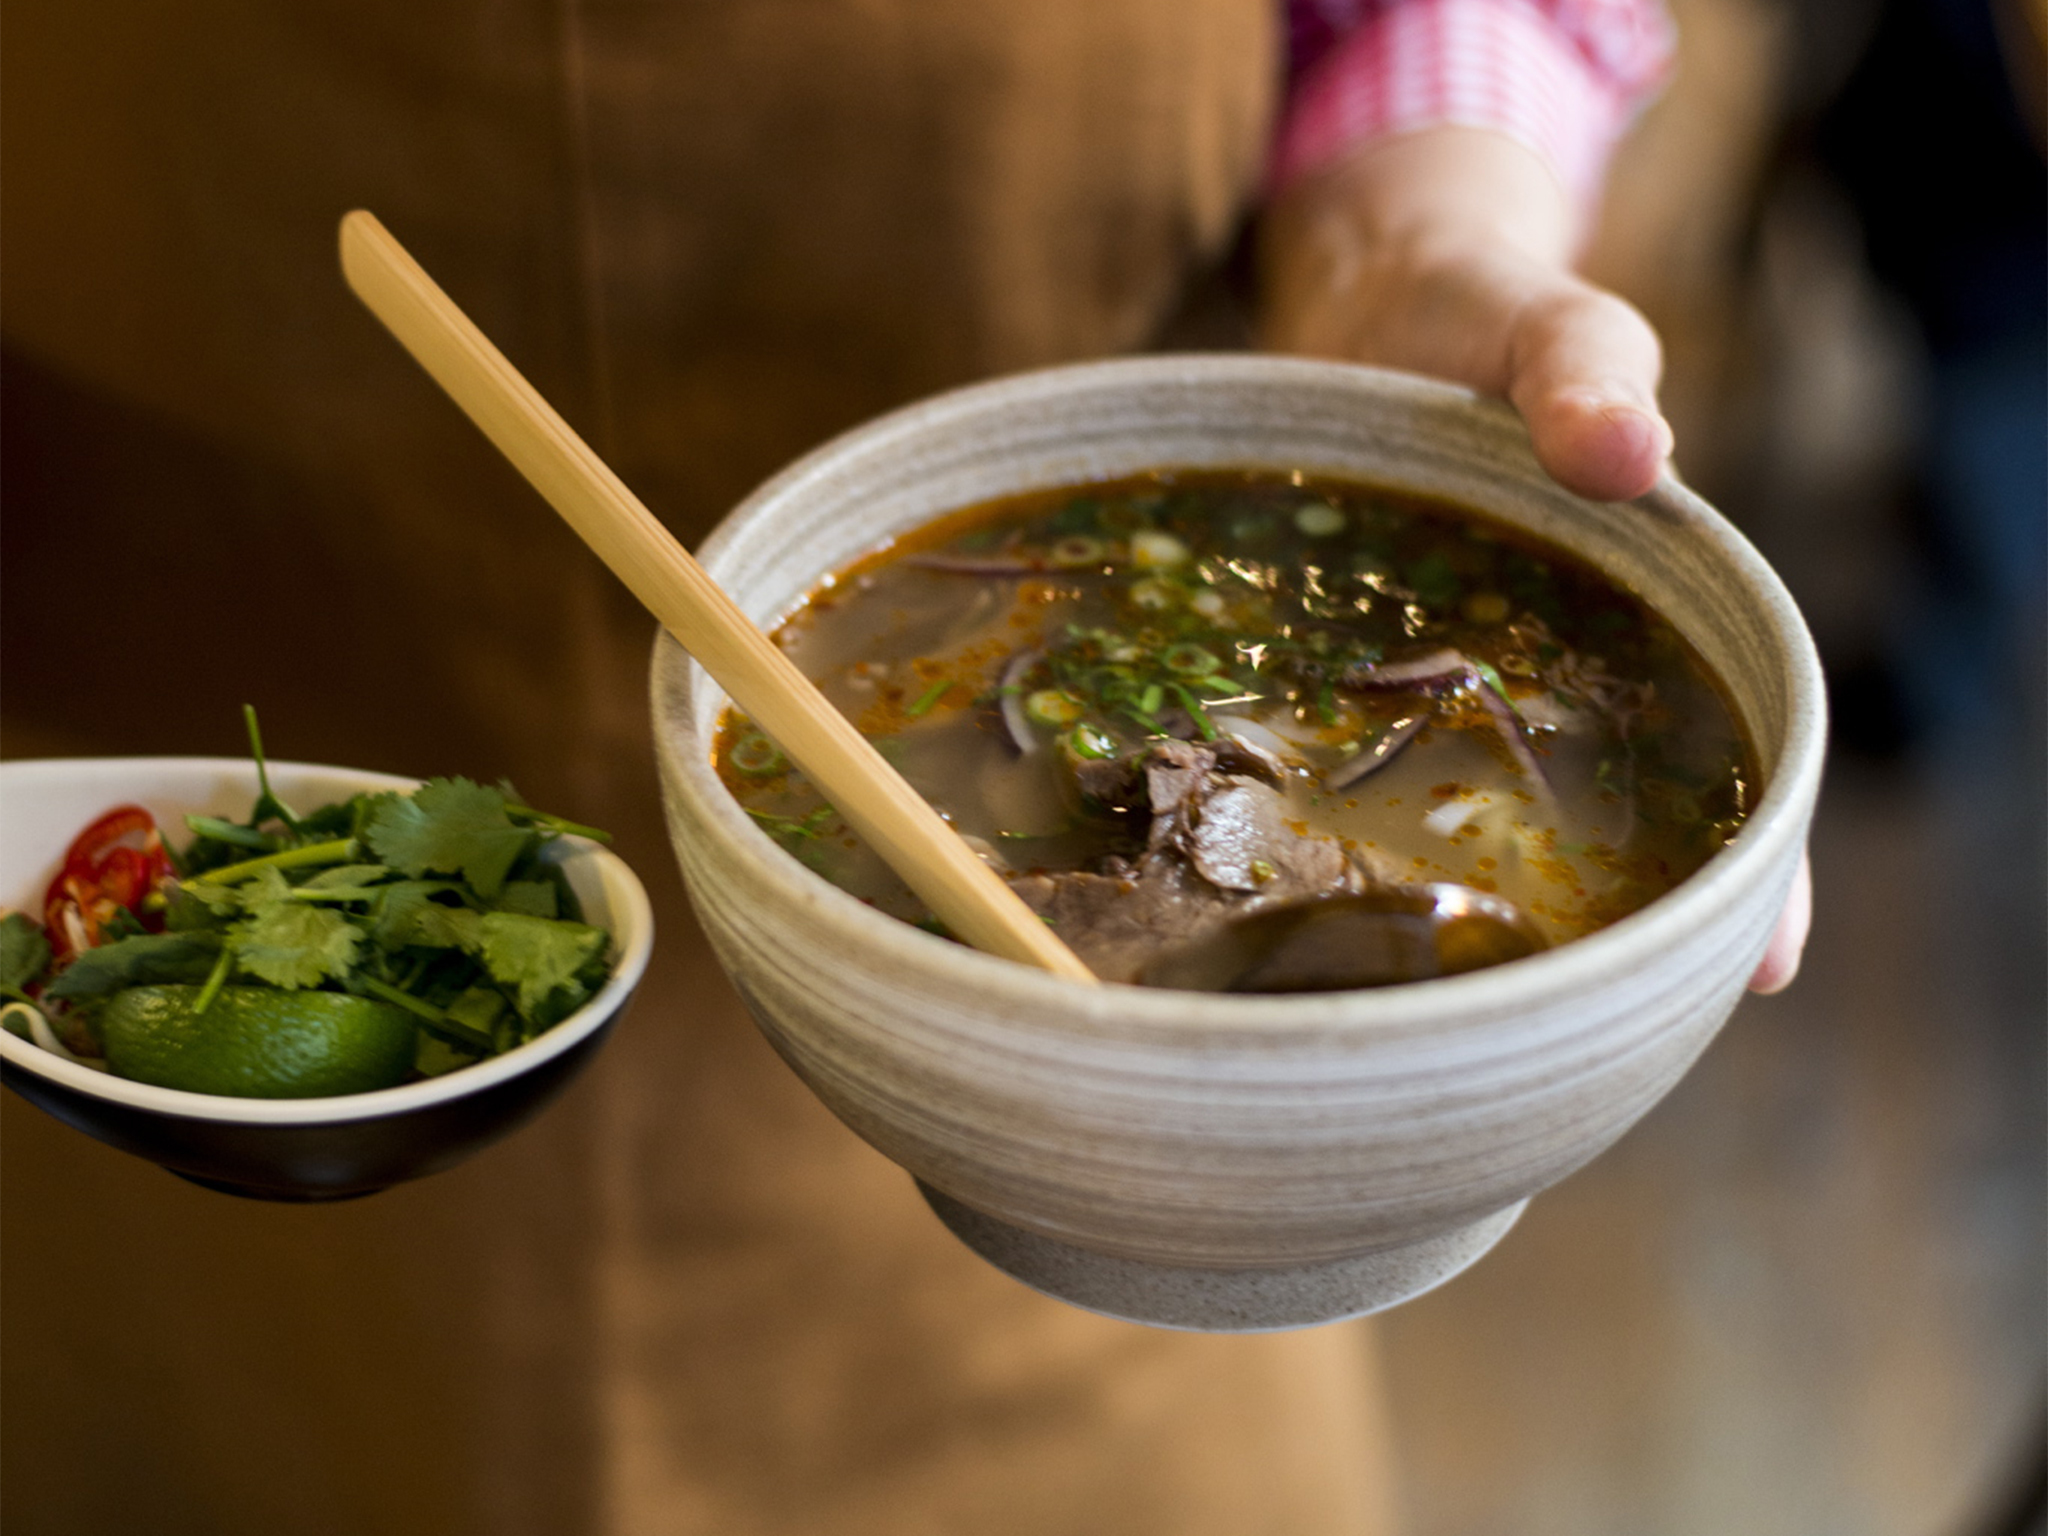 best new restaurants in london 2015, viet food